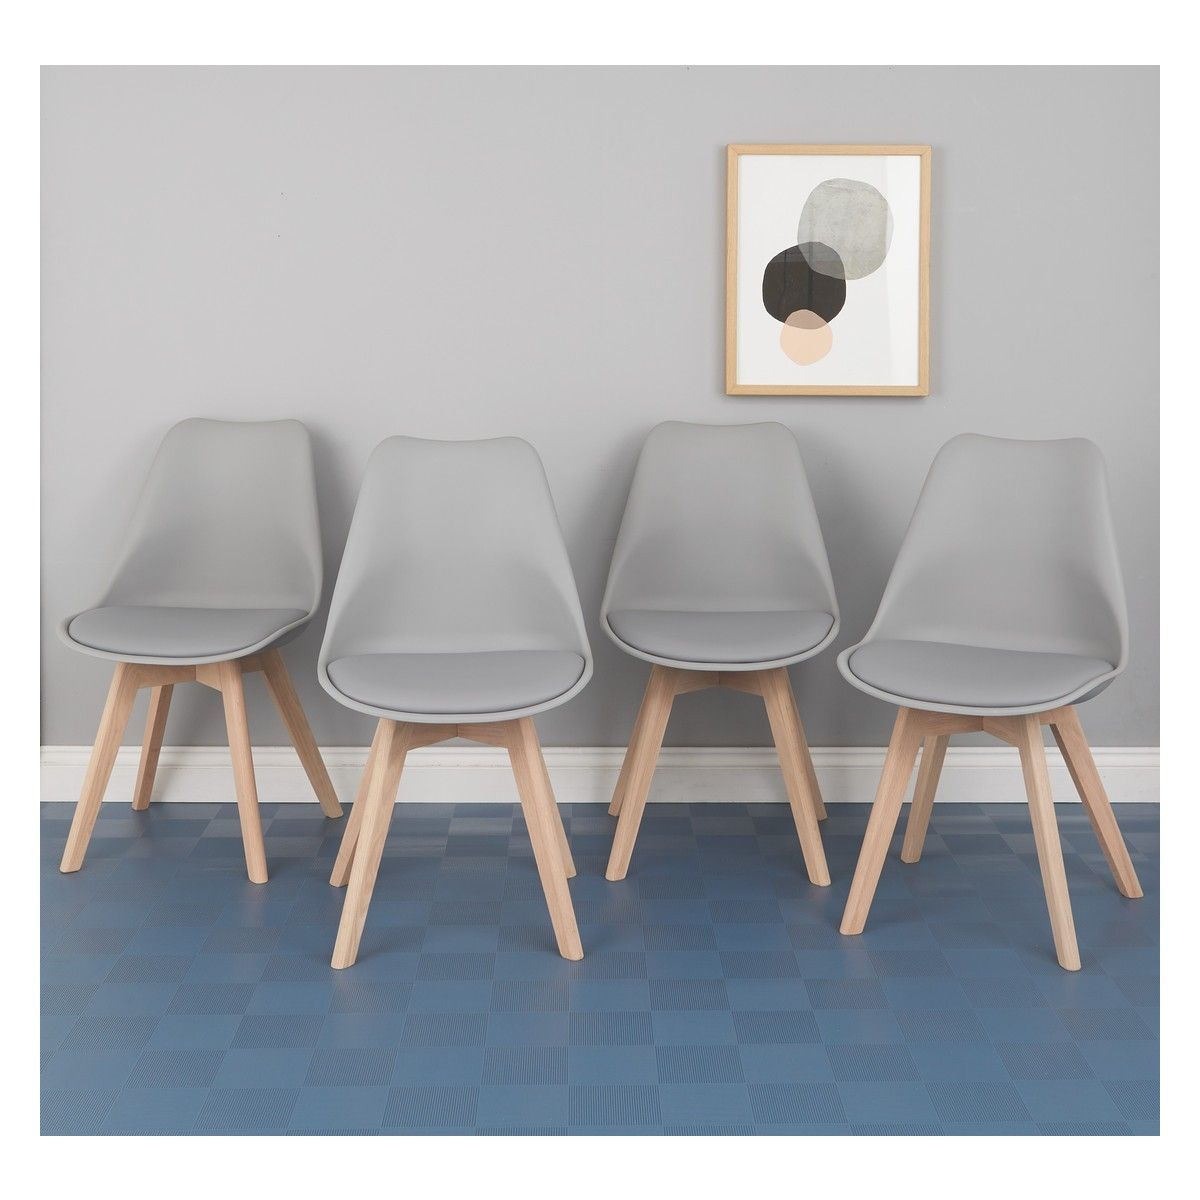 Jerry Set Of 4 Grey Dining Chairs Habitat Dining Chairs Dining